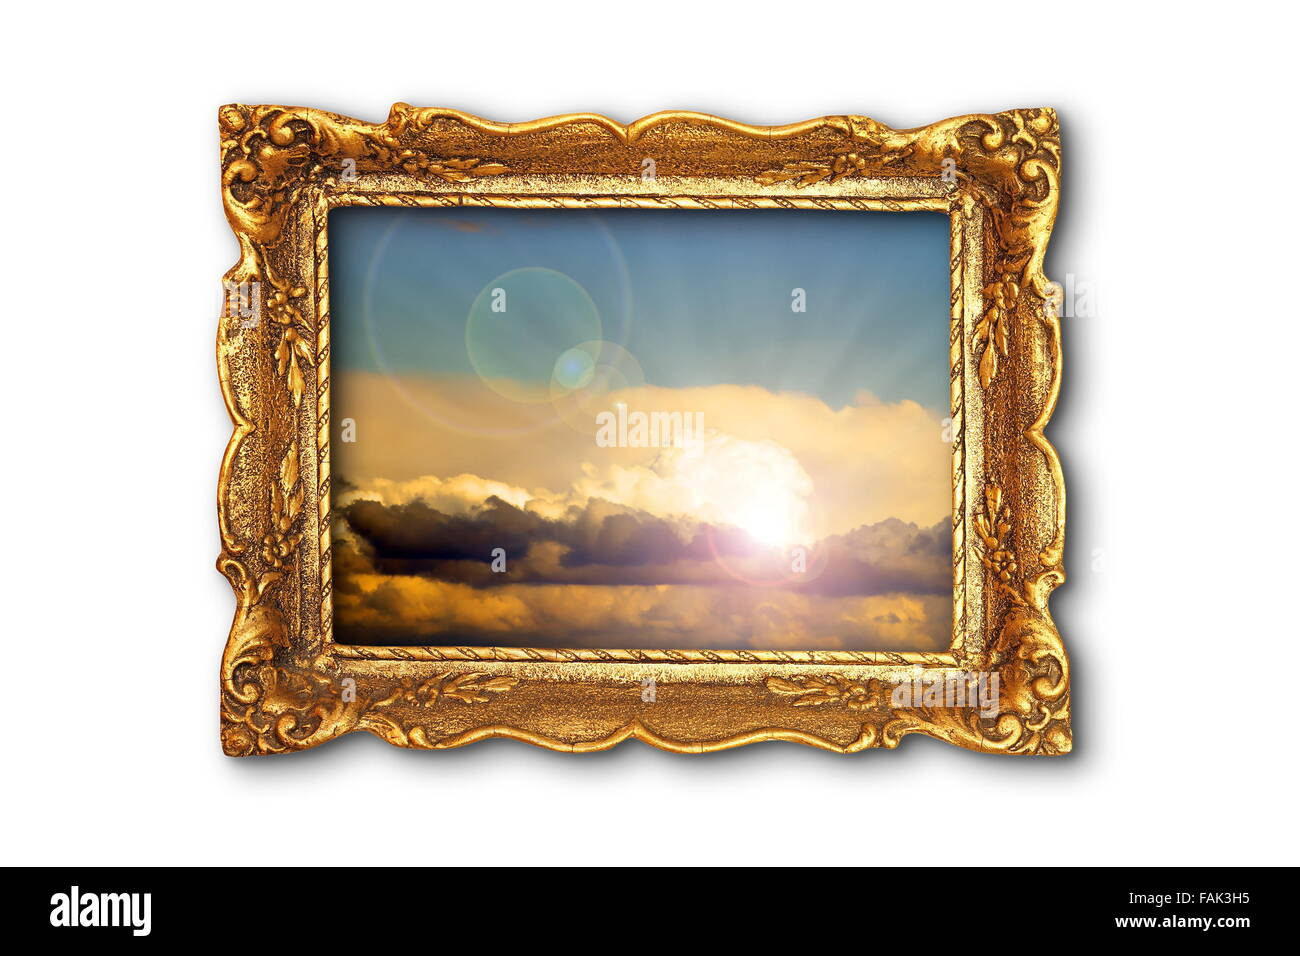 colorful sky image in ancient gilded painting frame; the image with the cloudy sky I used is also one of my pictures, - Stock Image